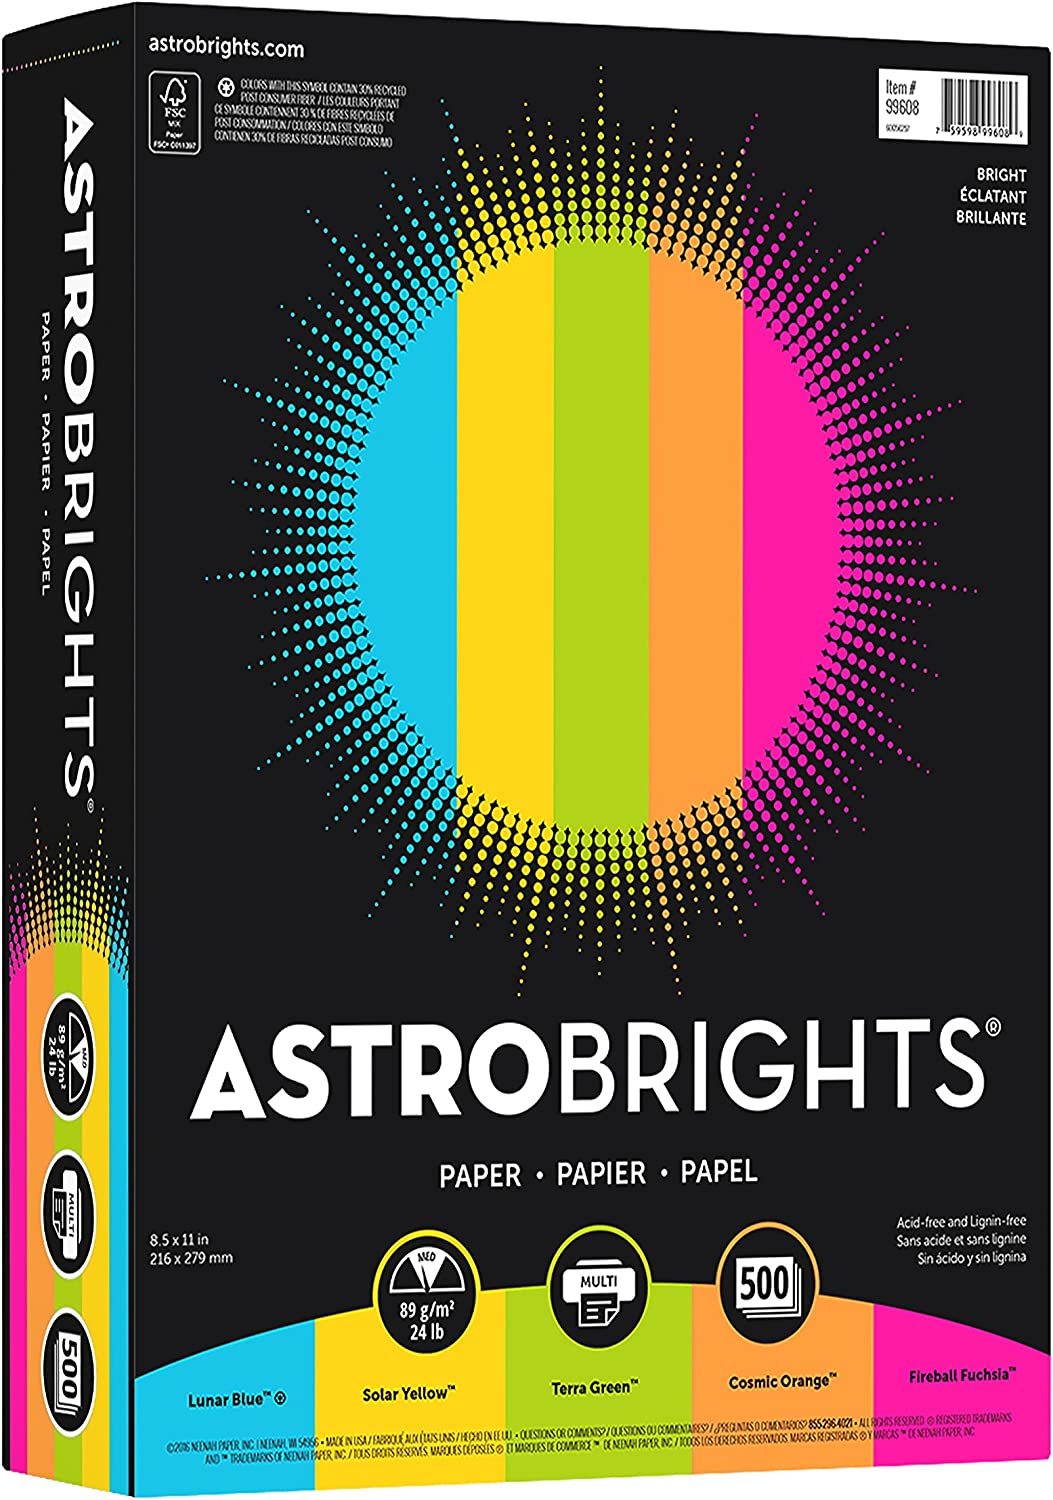 """Astrobrights Color Paper, 8.5"""" x 11"""", 24 lb/89 gsm, """"Brights"""" 5-Color Assortment, 500 Sheets (99608) : Office Products"""